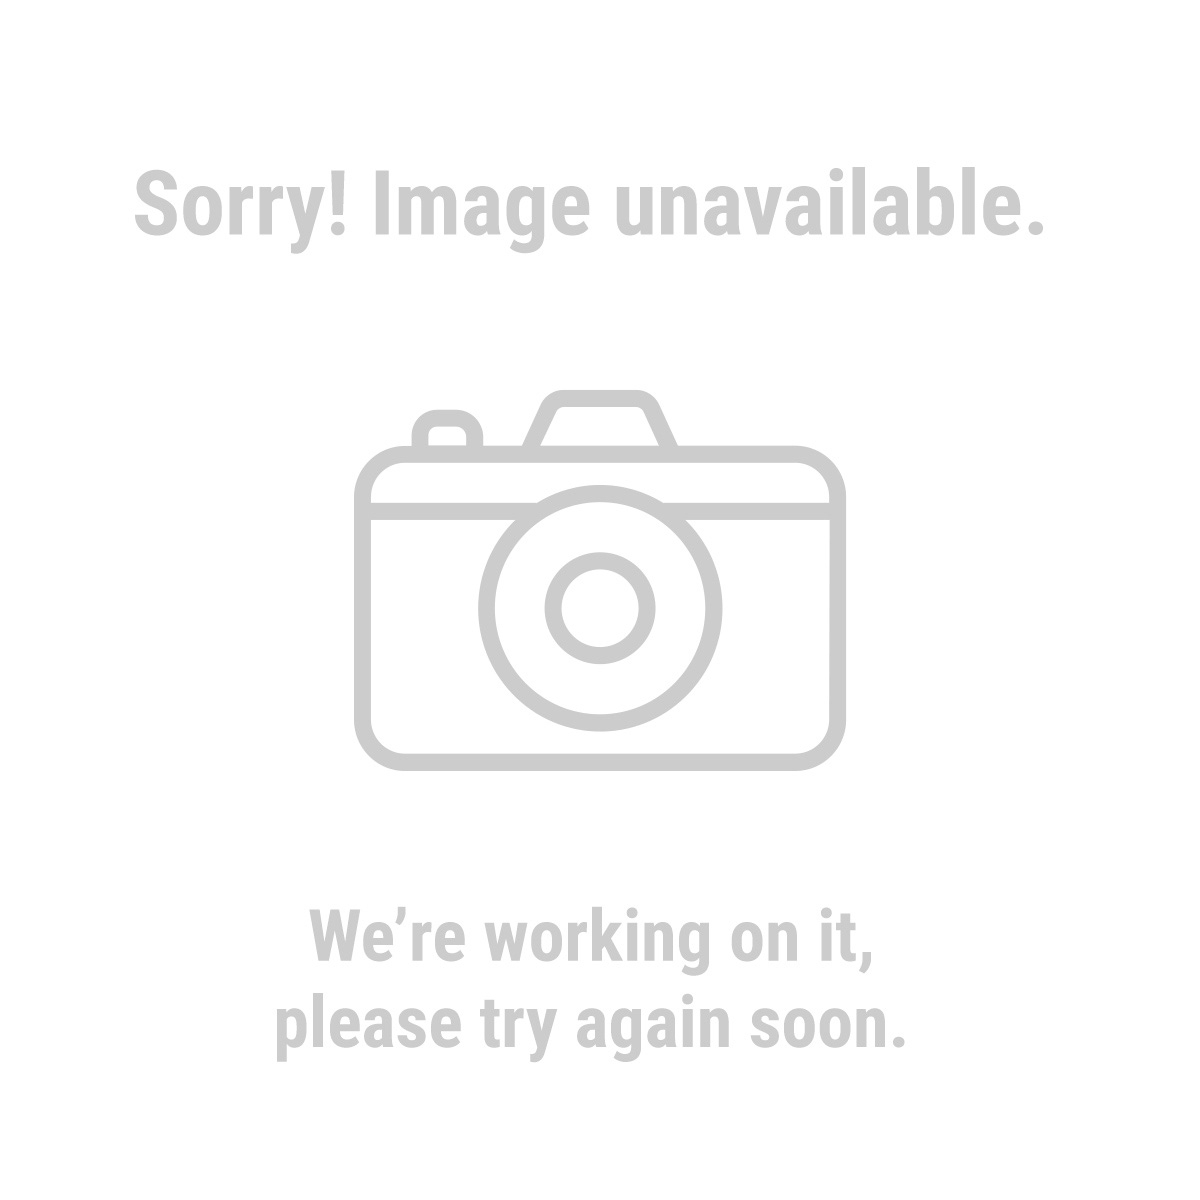 Chicago Electric Power Tools 61776 12 in. Double-Bevel Sliding Compound Miter Saw with Laser Guide System